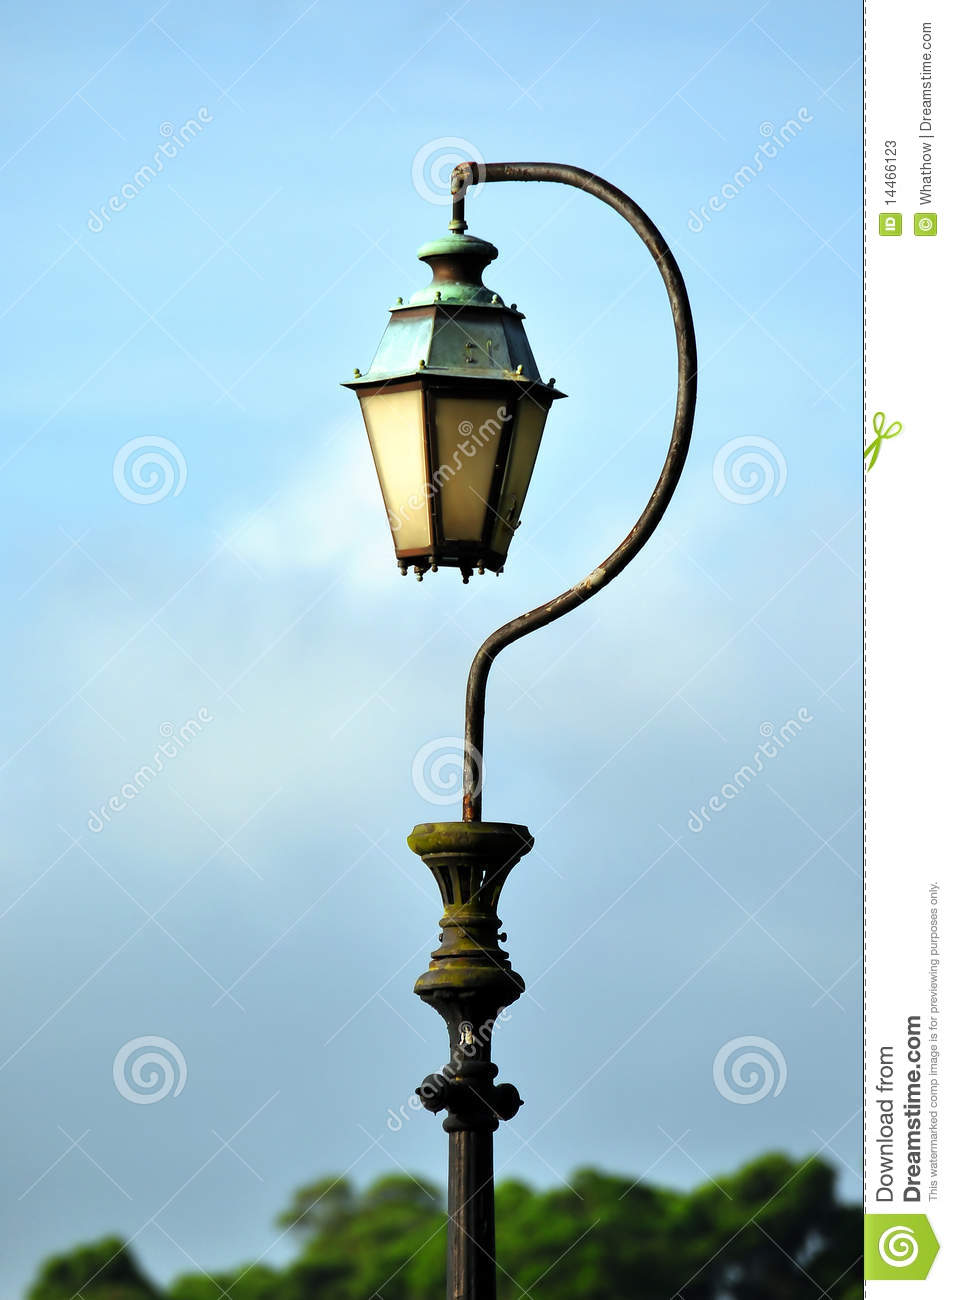 Antique Question Mark Shaped Lamp Post Stock Image Image Of Metal Blue 14466123